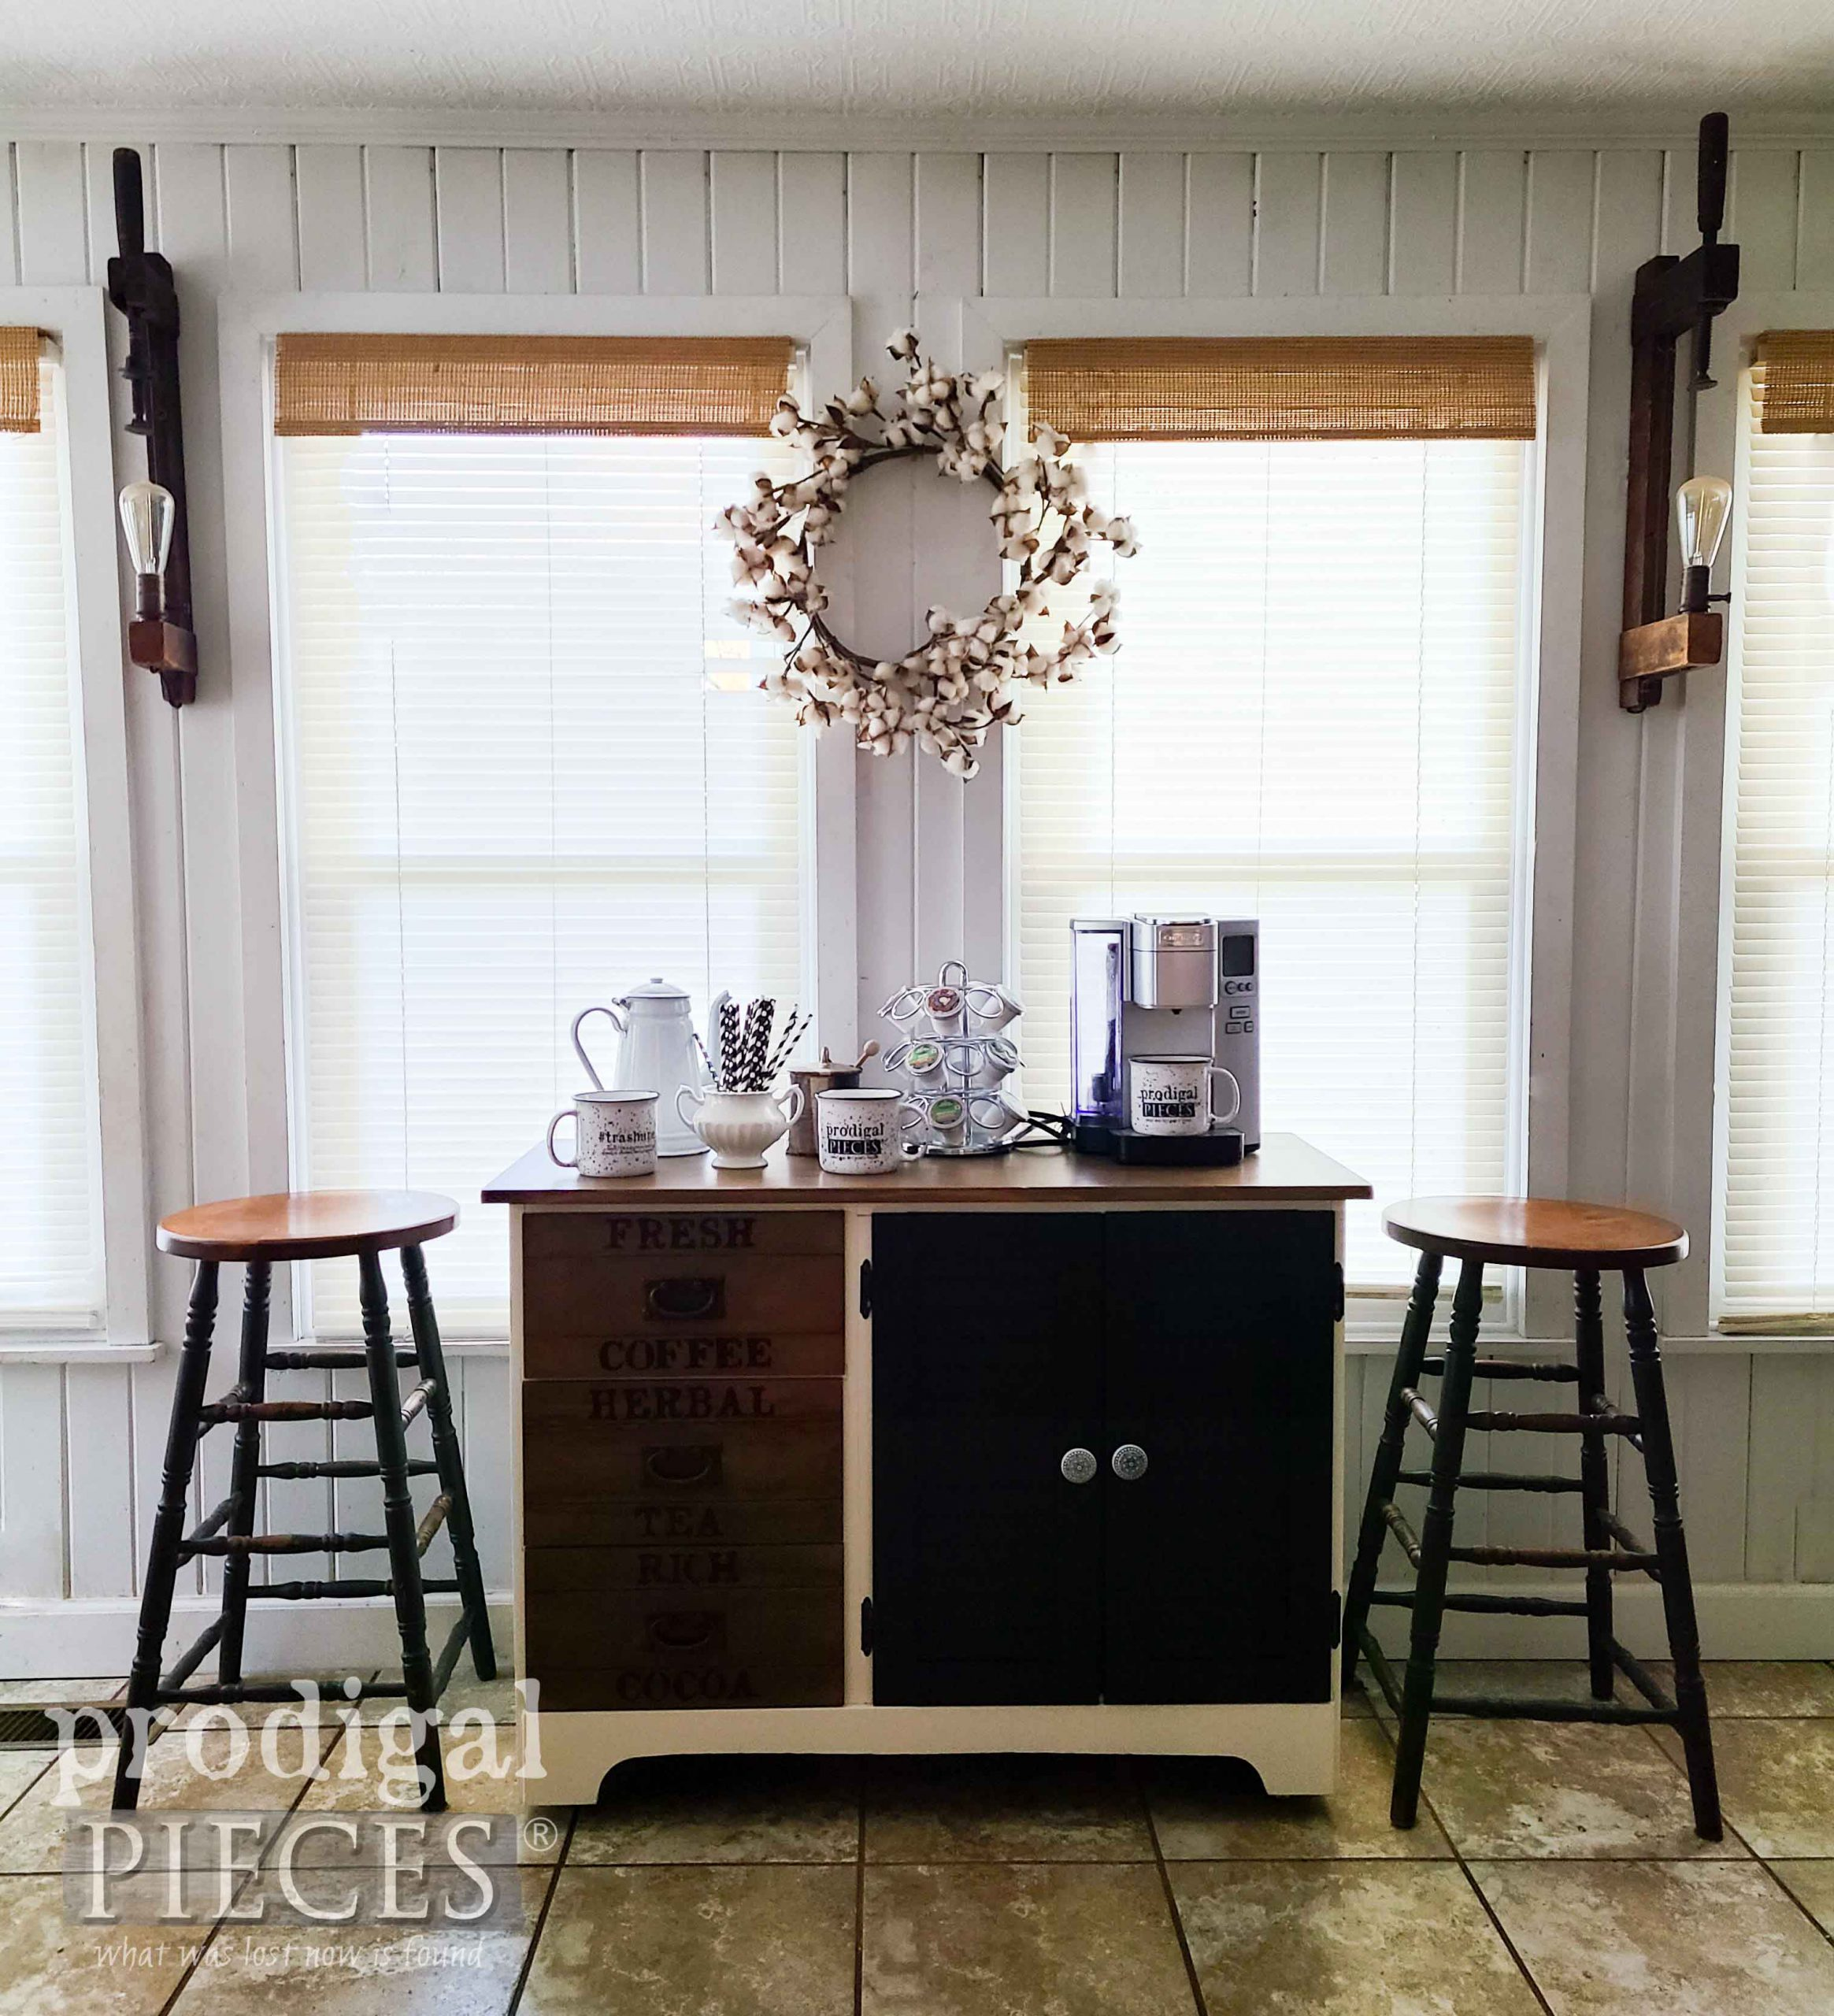 Modern Farmhouse Coffee Bar from Upcycled Cabinet by Larissa of Prodigal Pieces | prodigalpieces.com #prodigalpieces #furniture #coffee #entertaining #holidays #furniture #home #homedecor